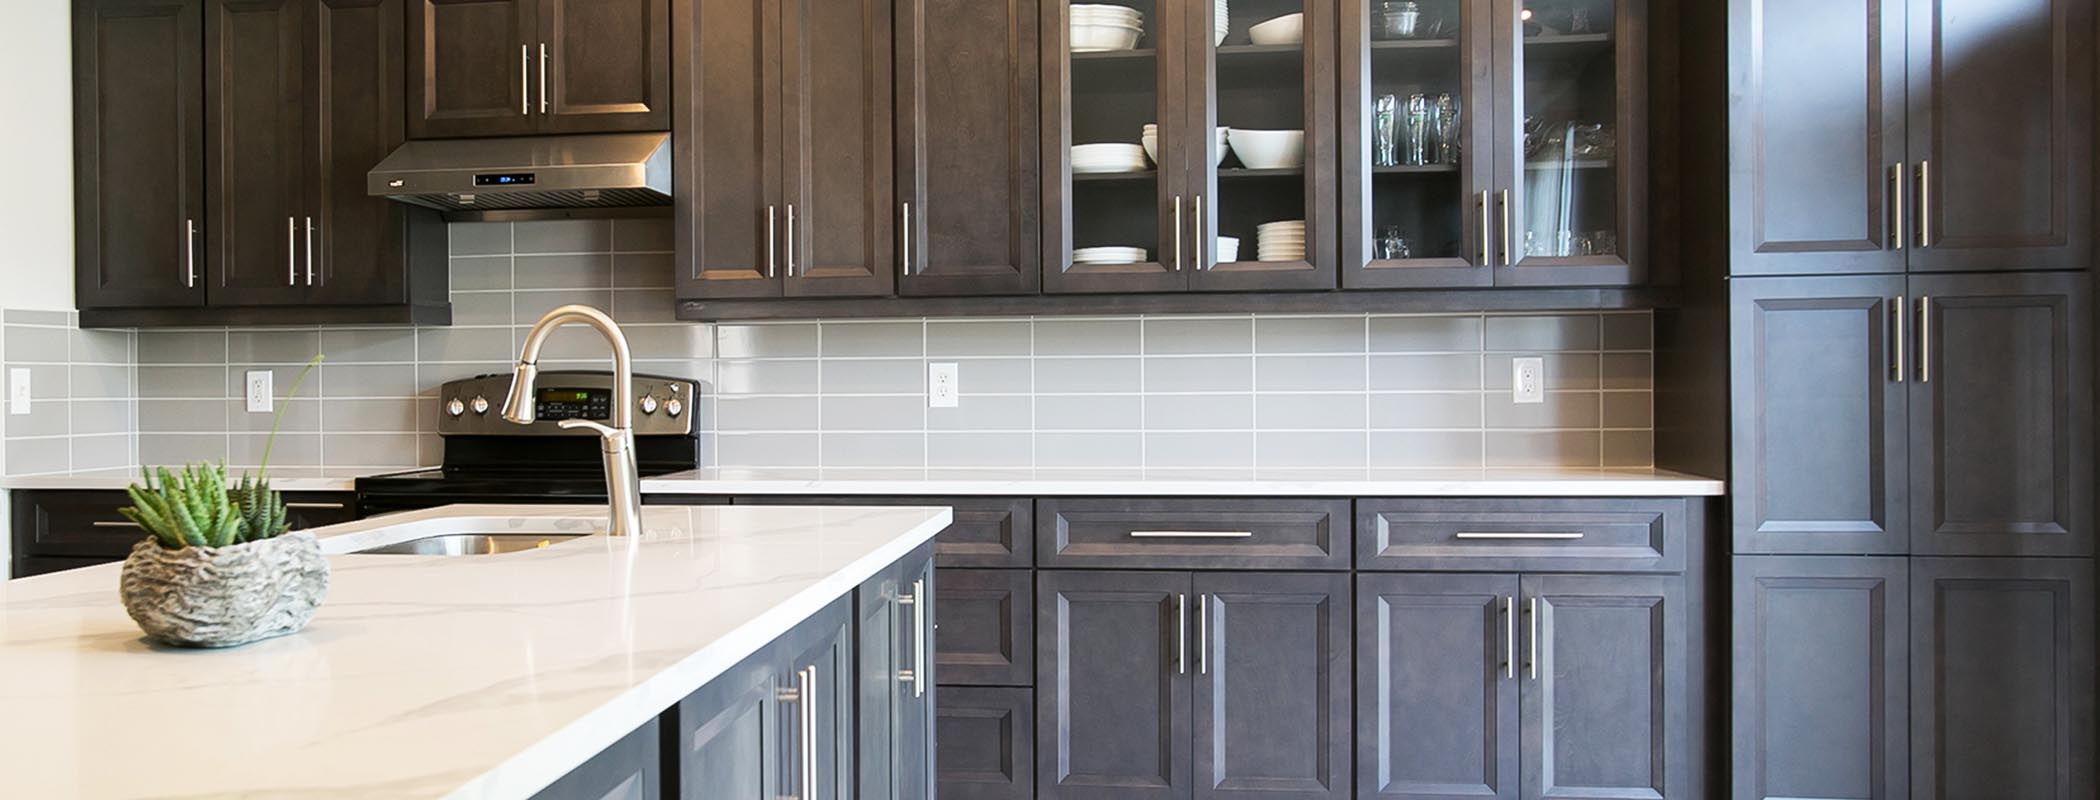 Transitional Charcoal Wood Kitchen Cabinet Montreal